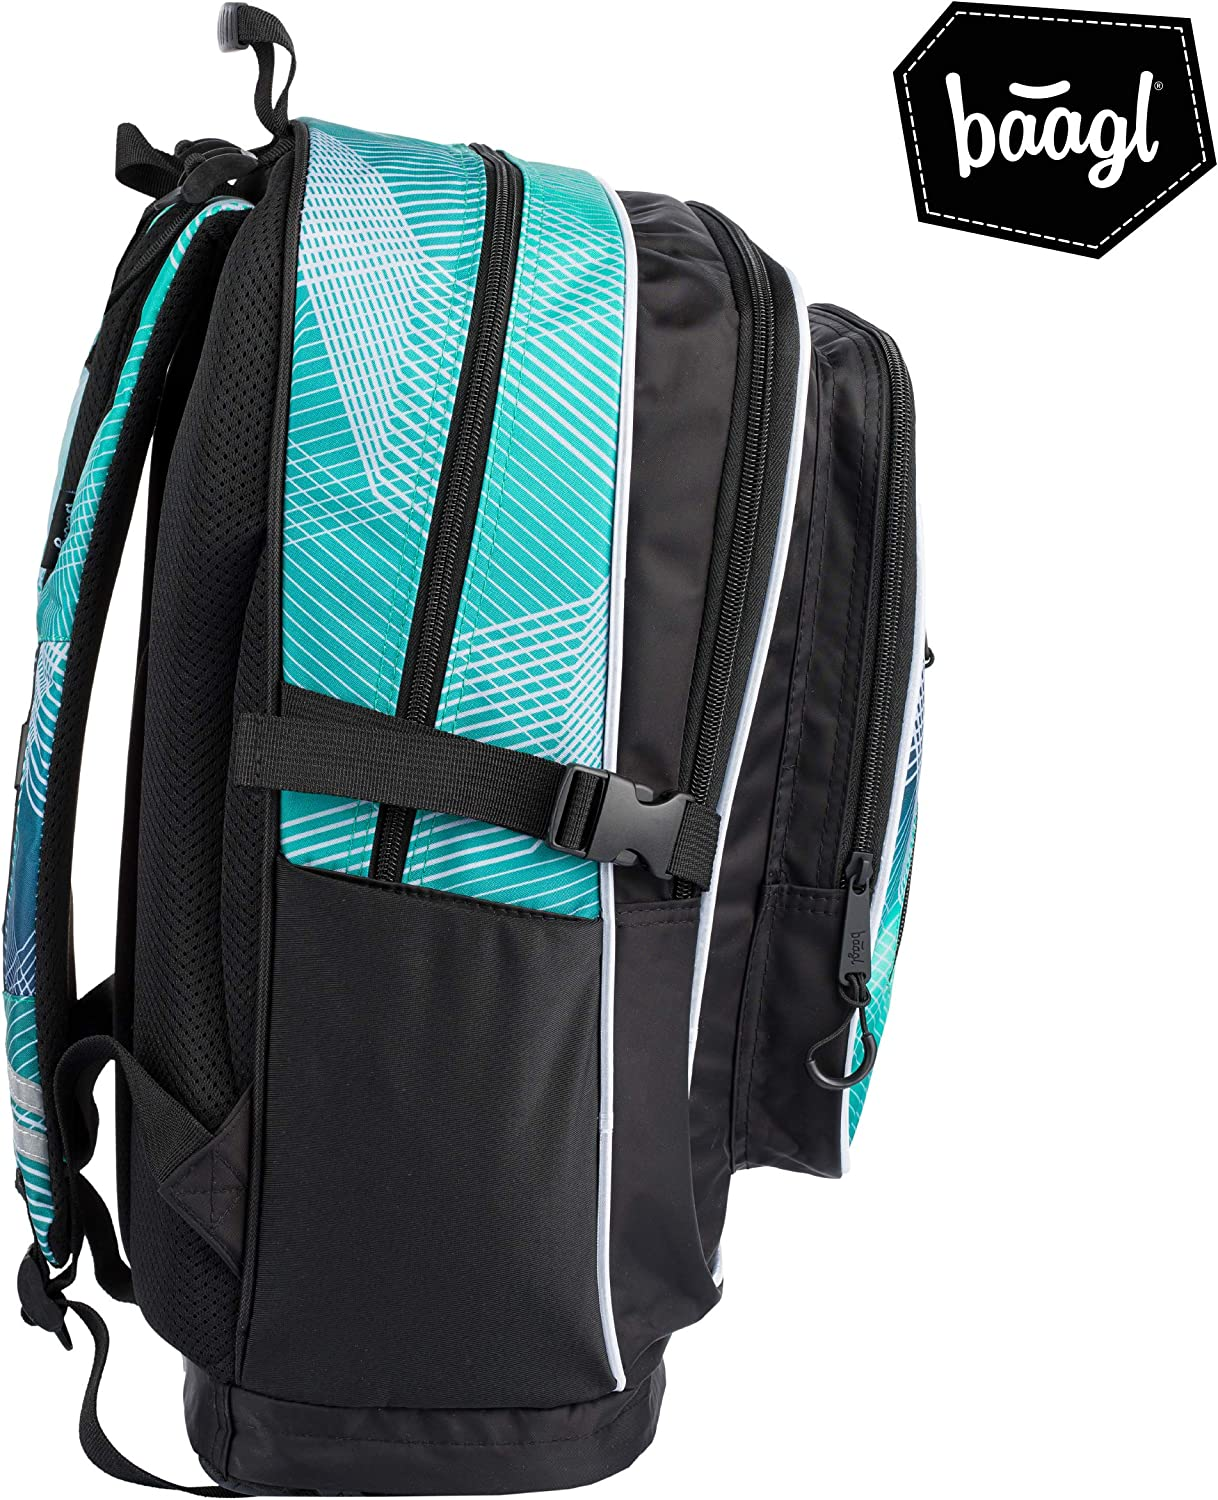 Cubic School Backpack Elementary and Middle School